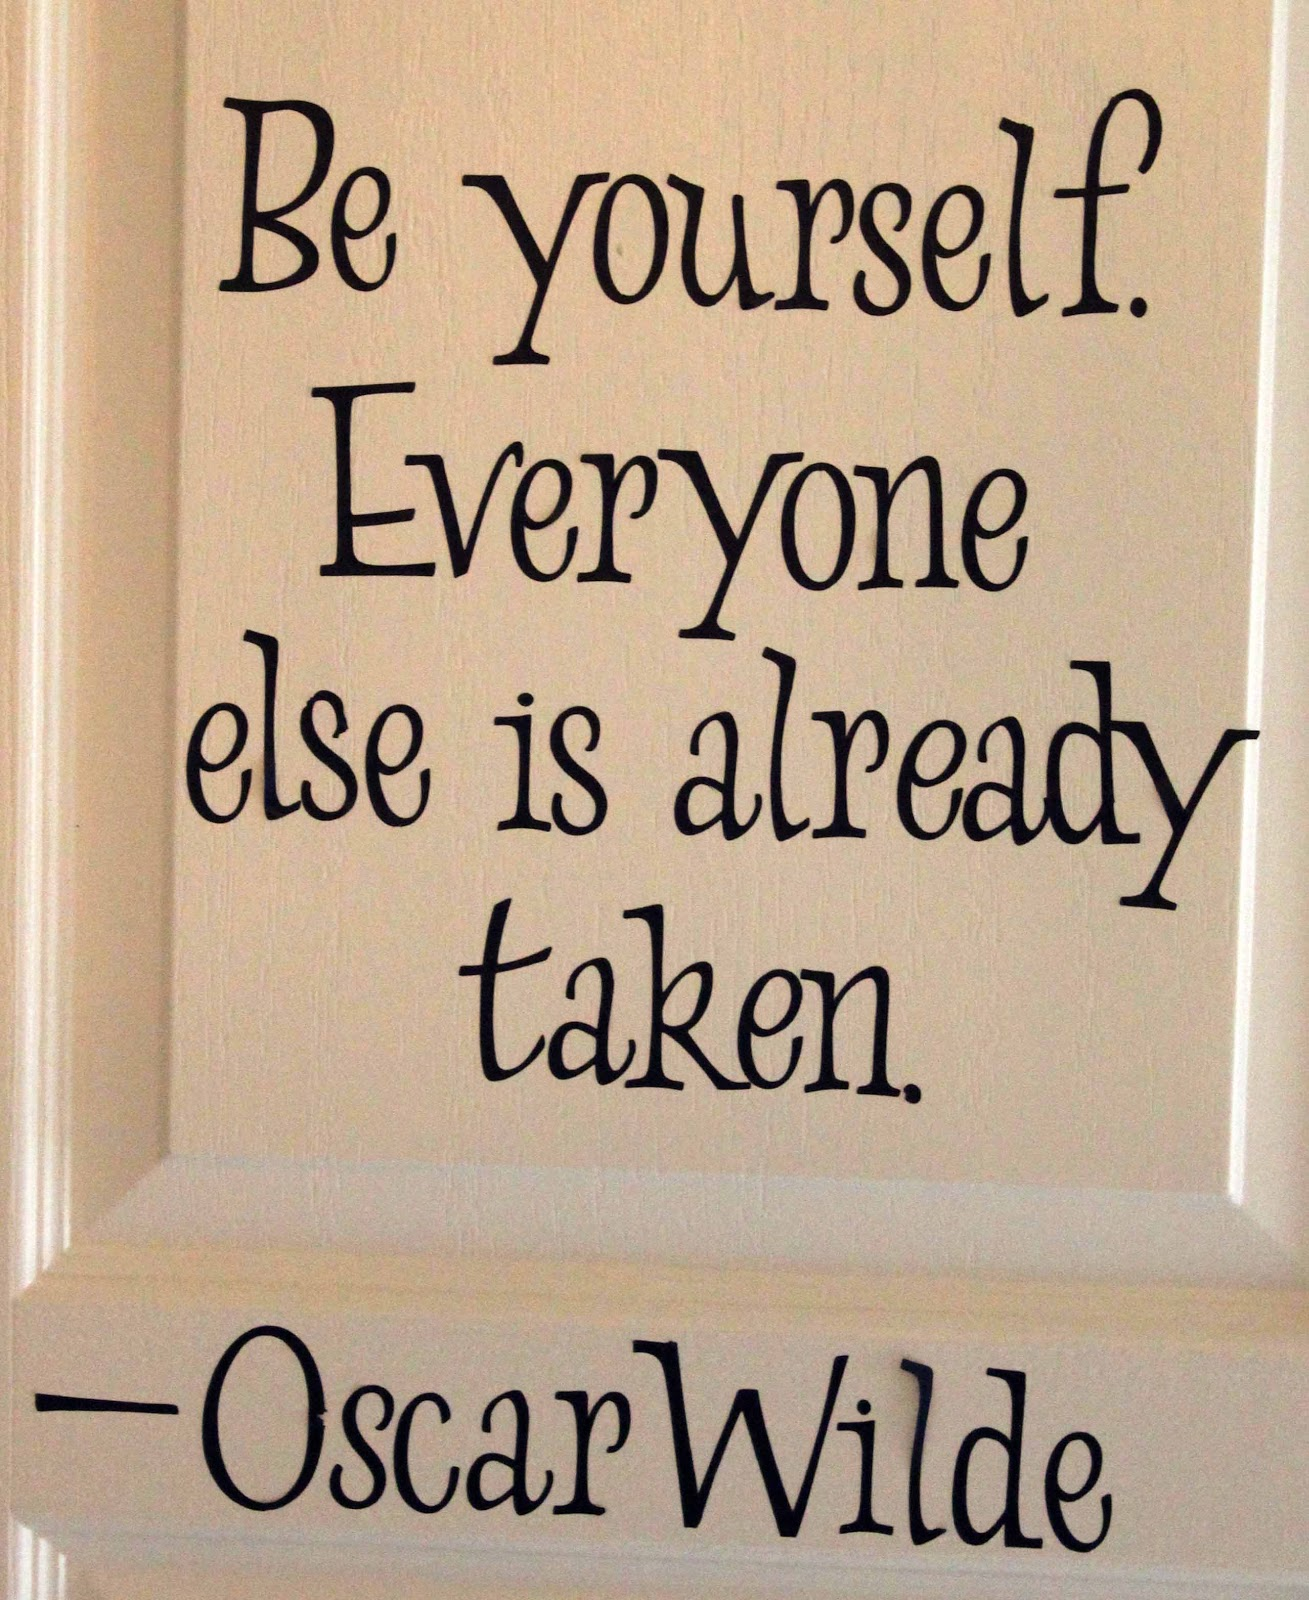 Inspirational Quotes About Being: Inspirational Quotes About Being Organized. QuotesGram